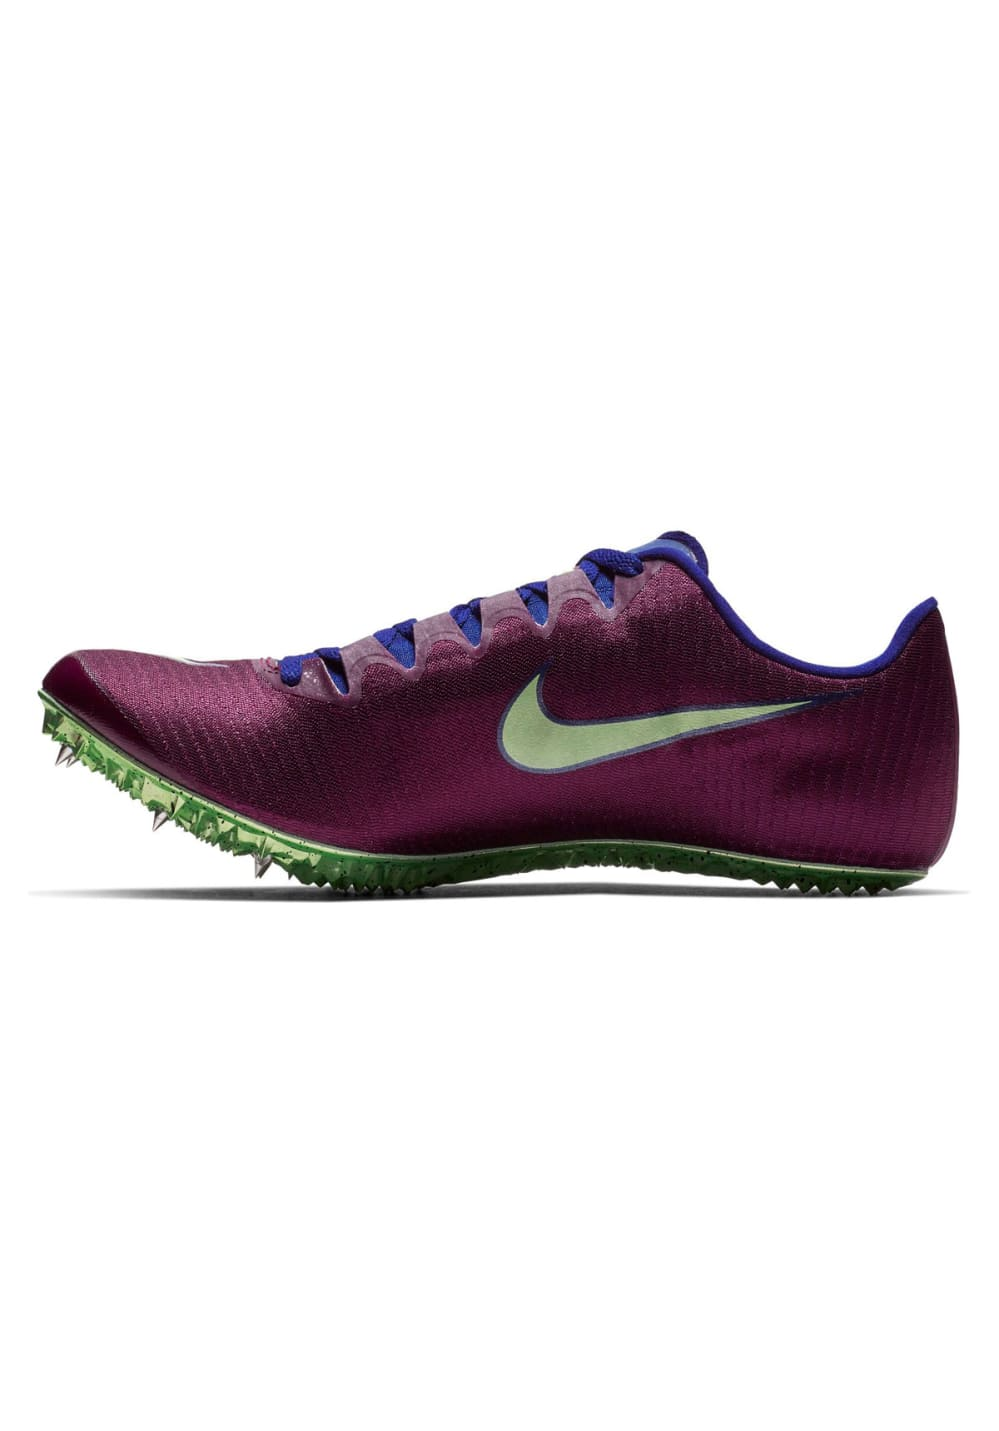 timeless design 9acda a5398 Nike Zoom Matumbo 3 - Spikes - Red  21RUN